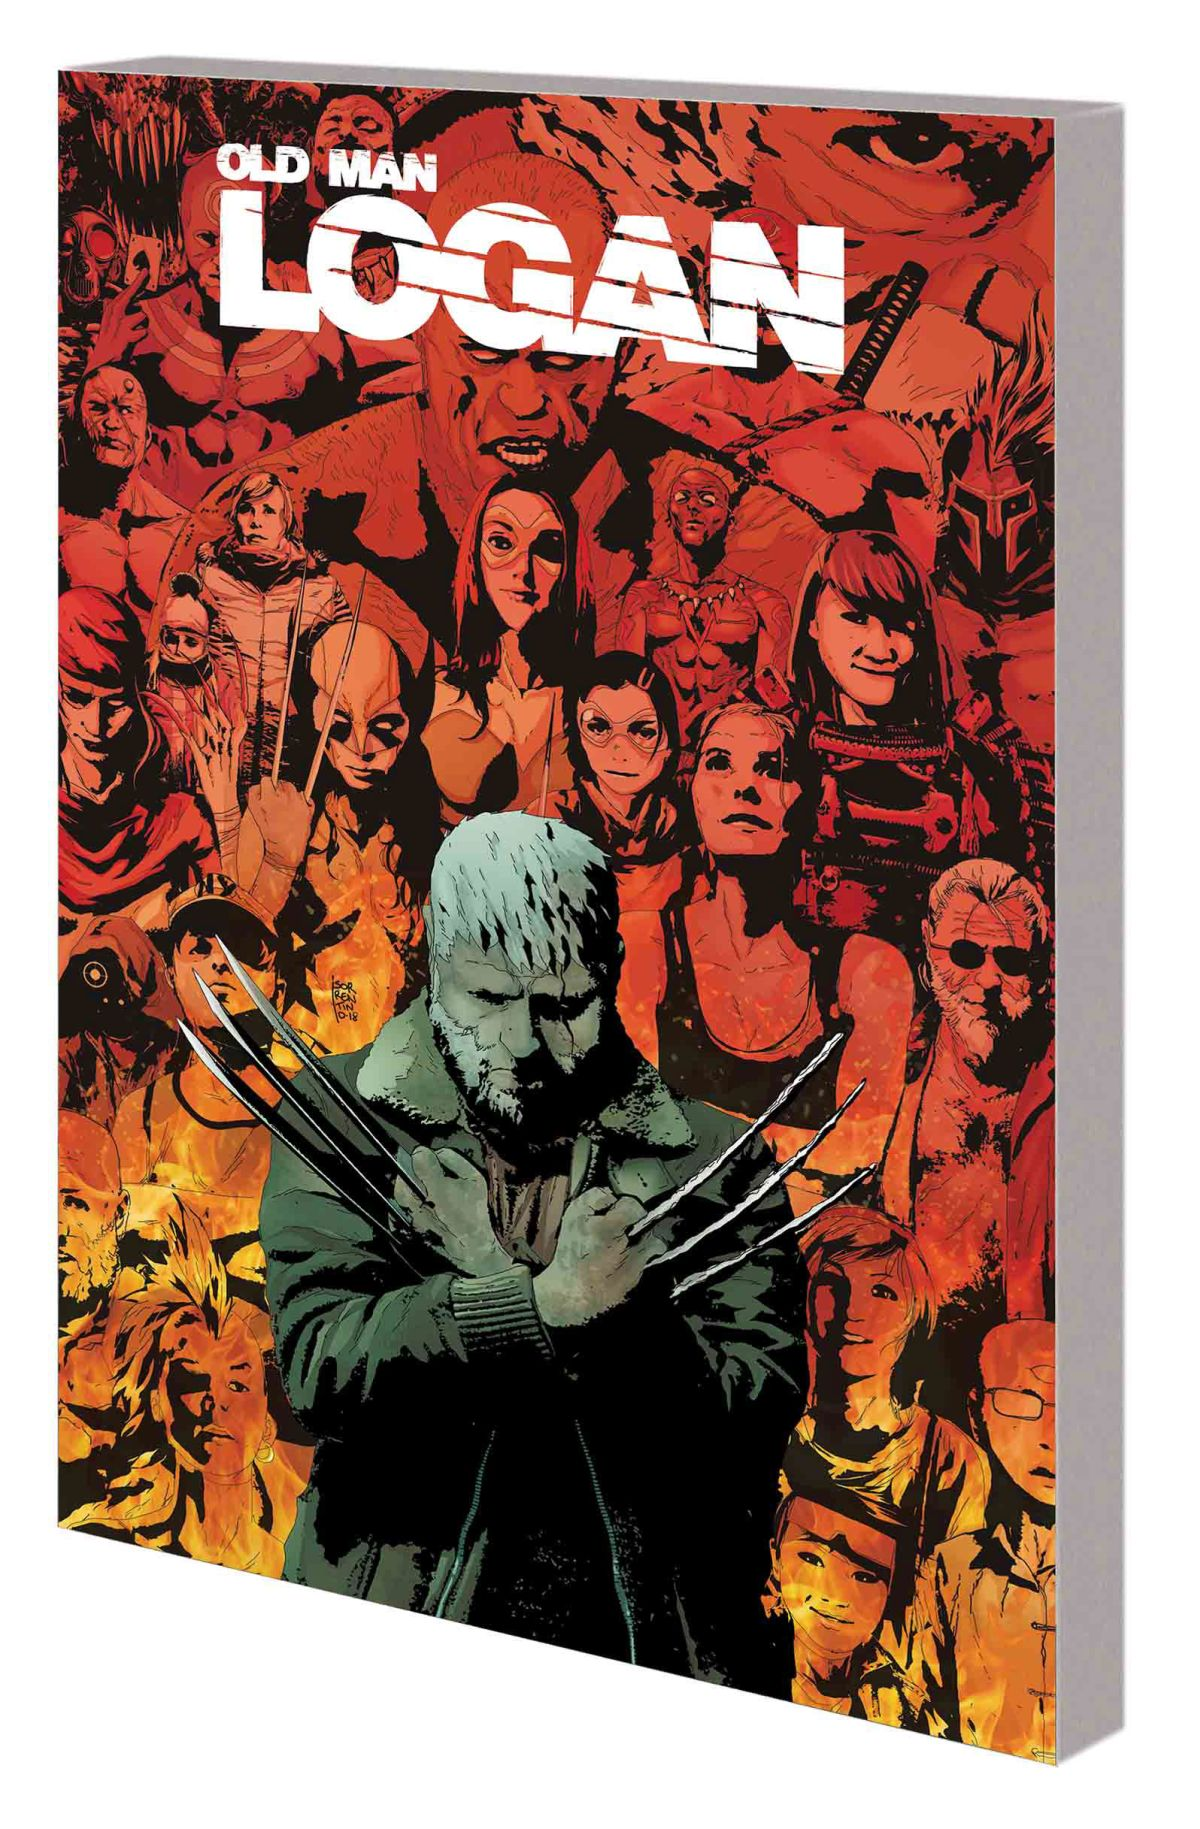 WOLVERINE: OLD MAN LOGAN VOL. 10 — END OF THE WORLD TPB